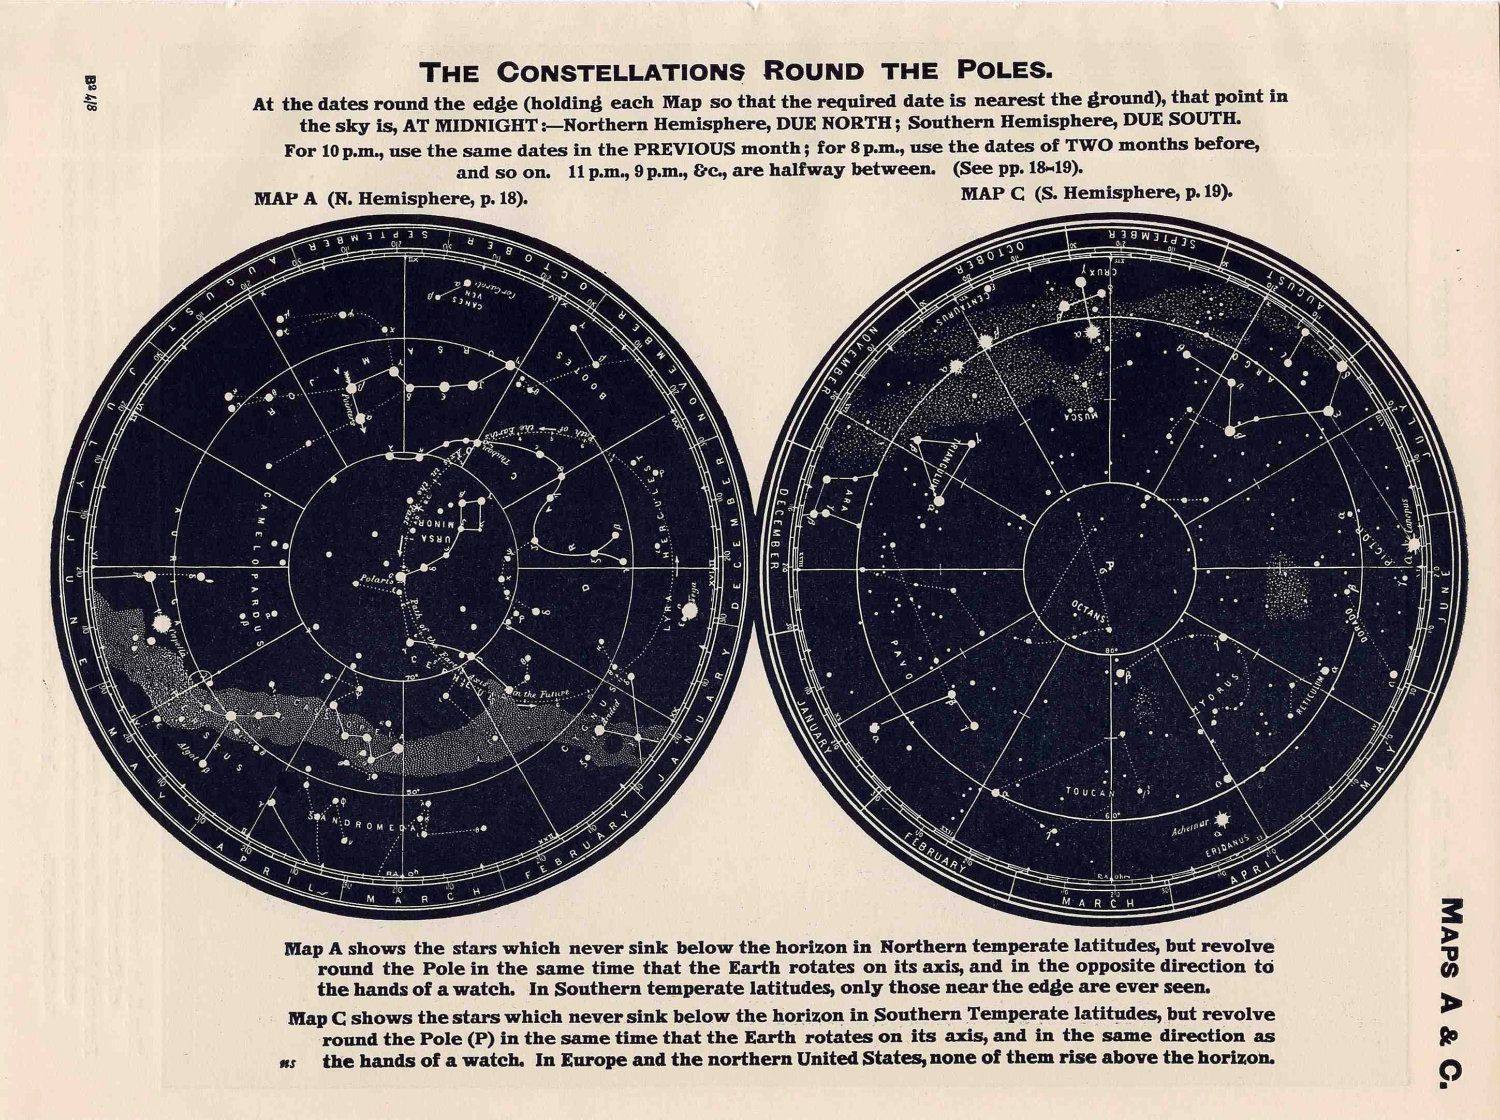 Google Image Result For Http Img1 Etsystatic Com 004 0 5663576 Il Fullxfull 357671617 H2w6 Jpg Constellation Map Constellations Star Map